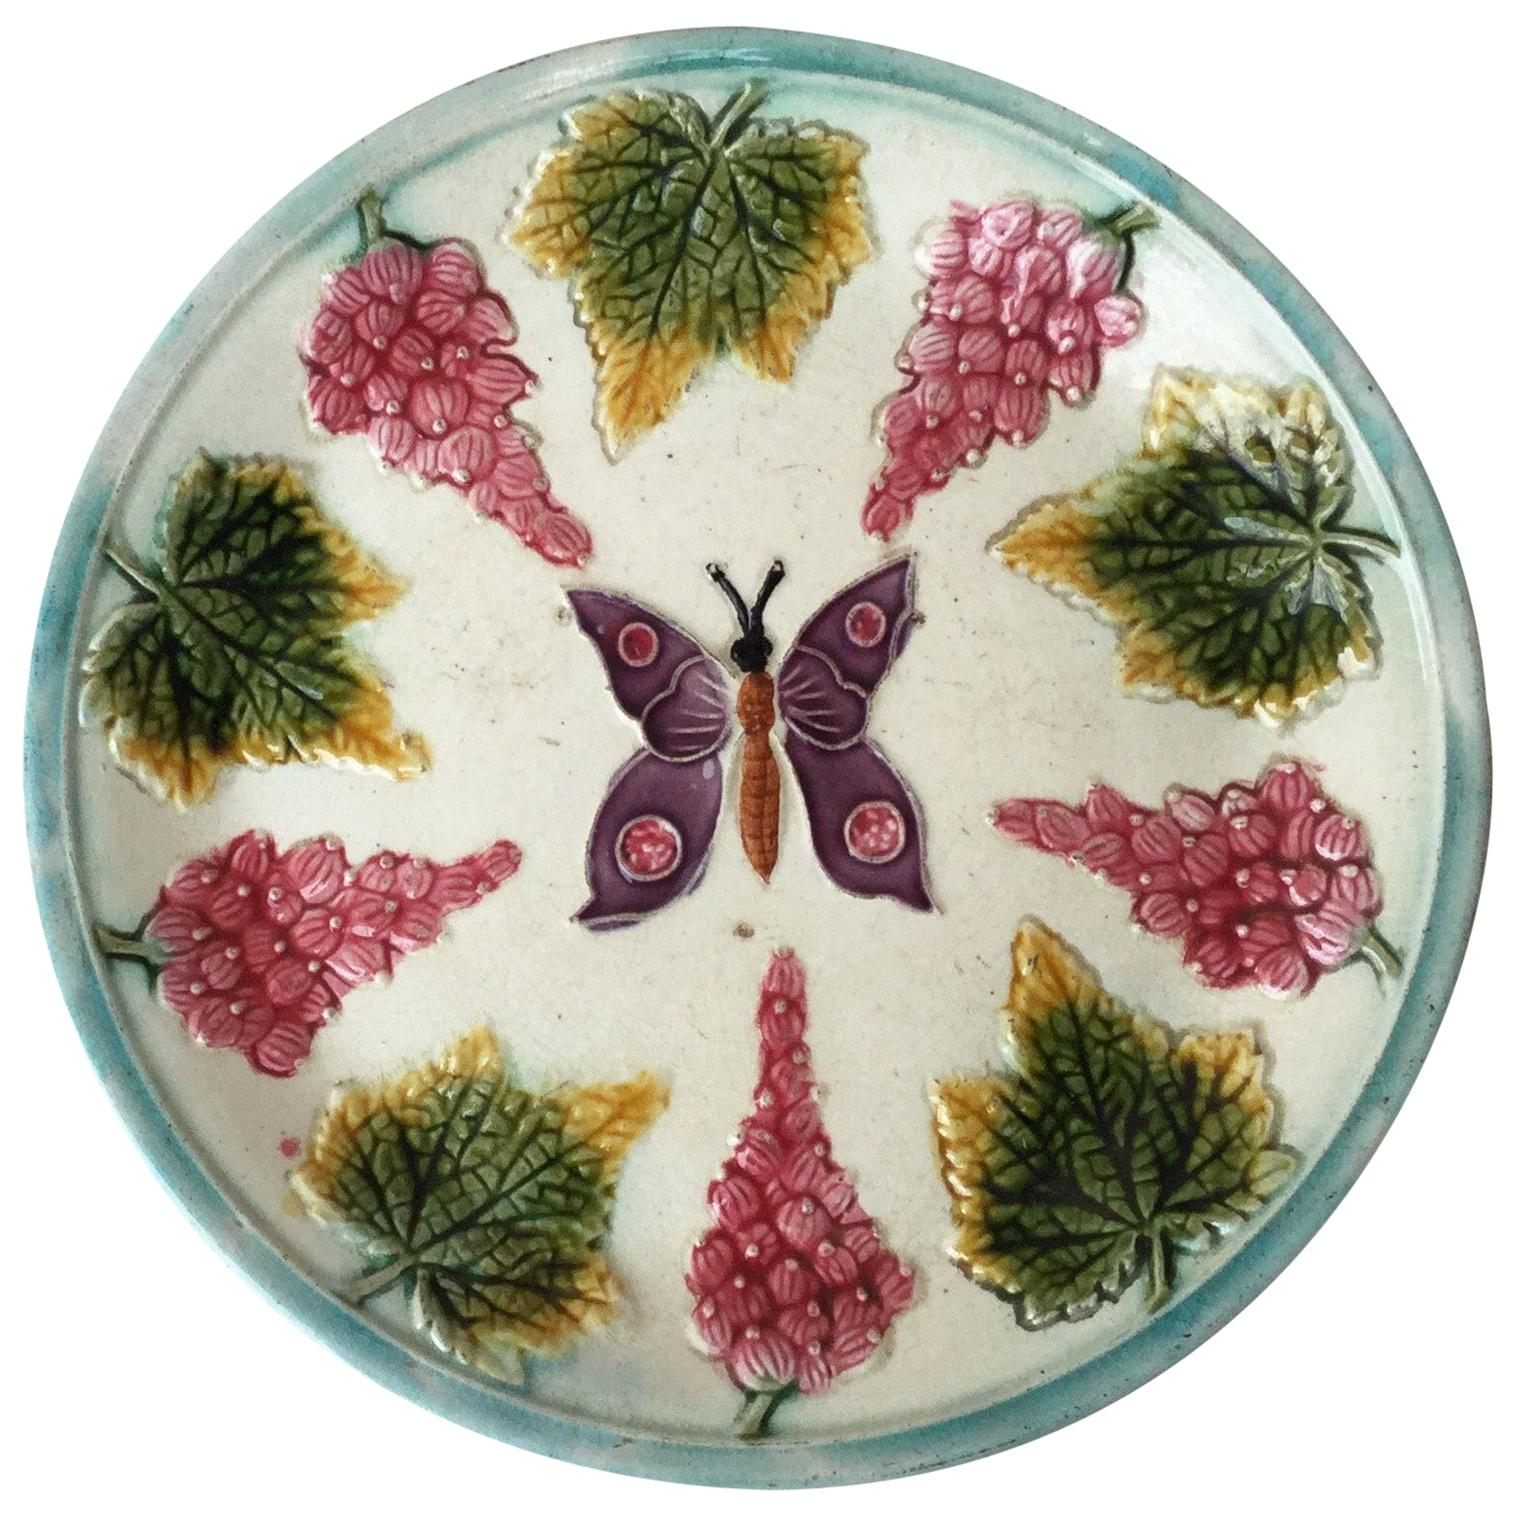 Majolica Plate with Butterfly and Fruits, circa 1890